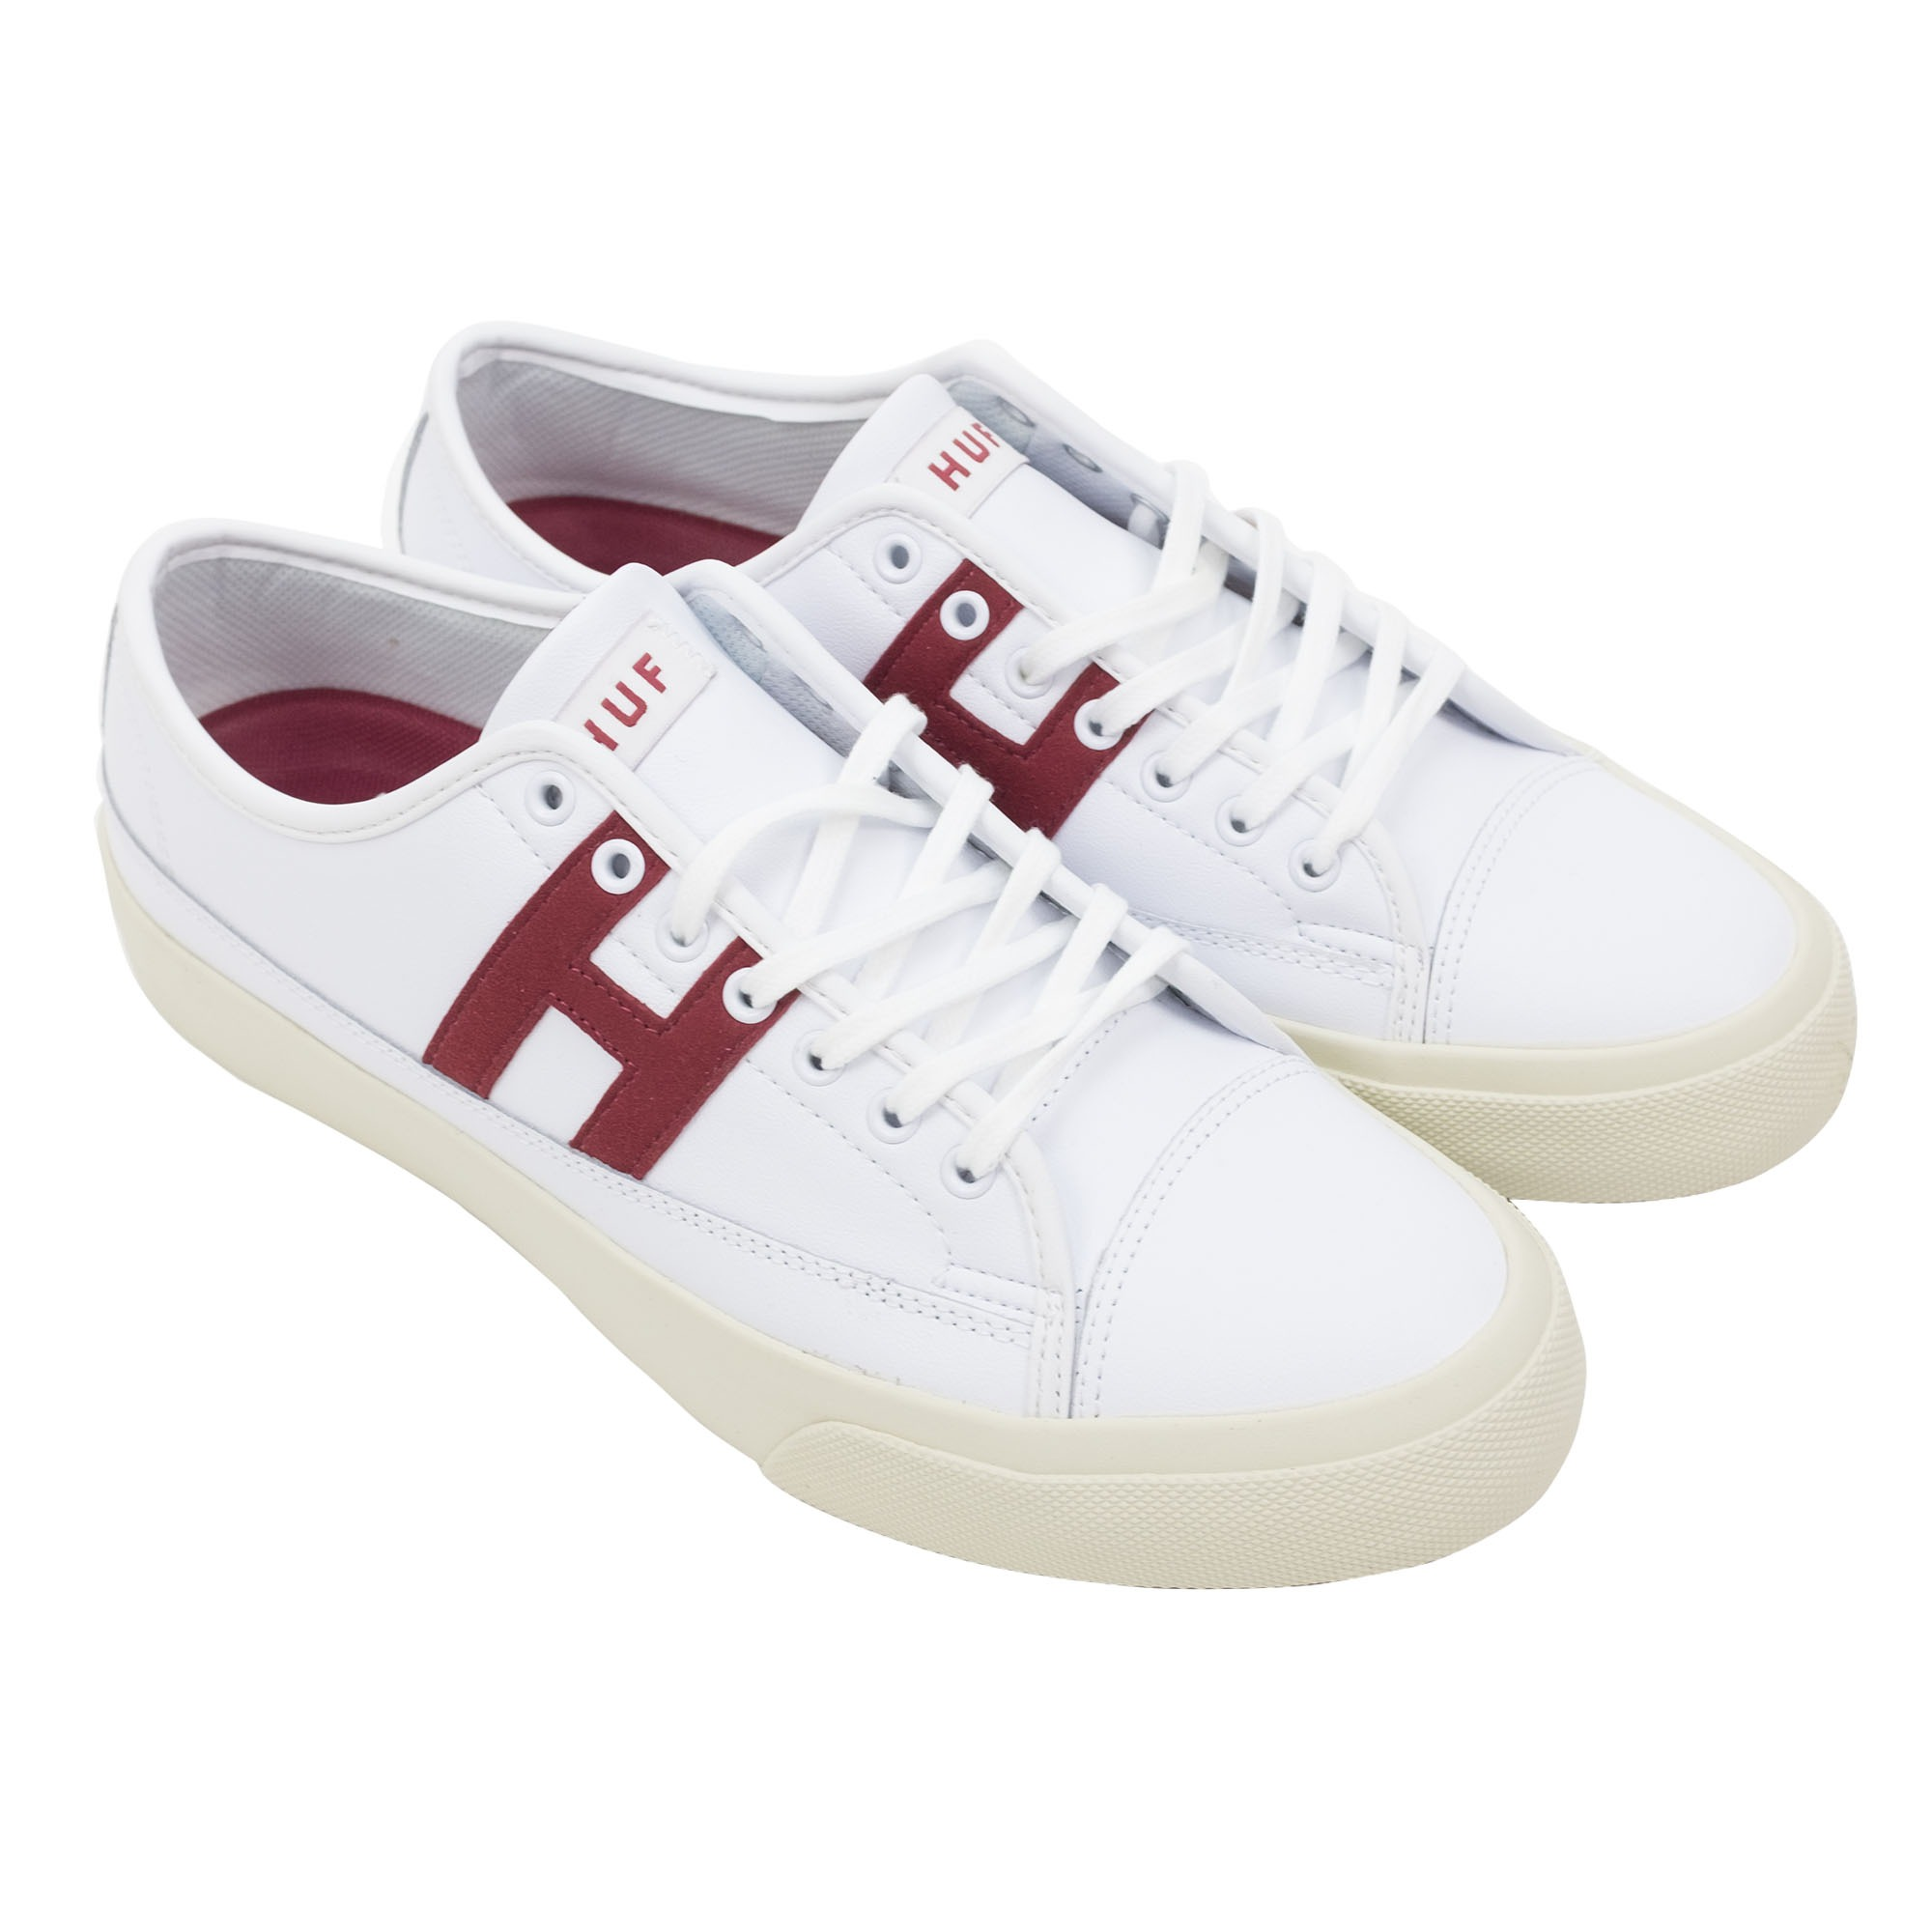 HUF Hupper 2 Lo - White